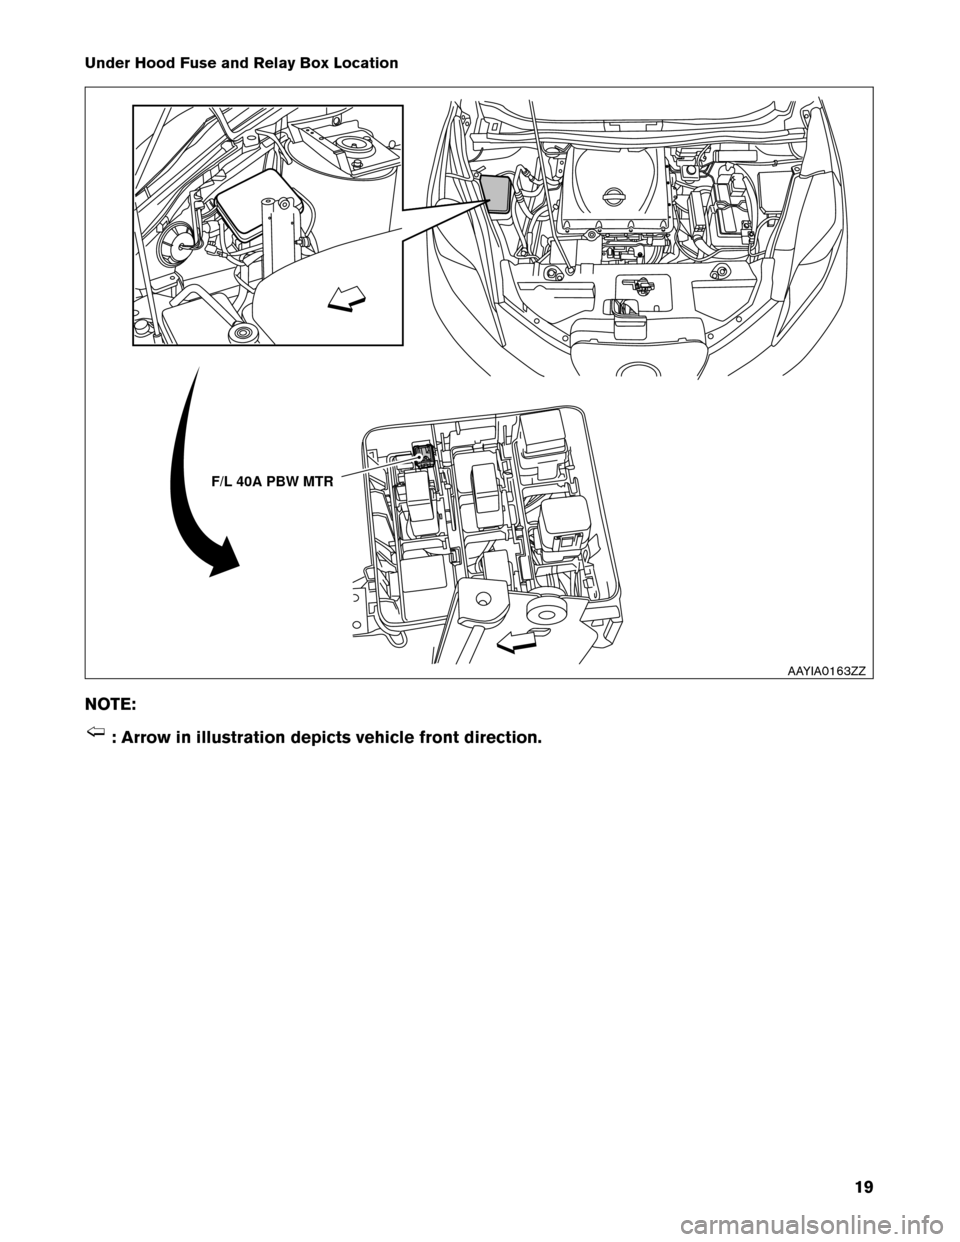 NISSAN LEAF 2013 1.G Roadside Assistance Guide Under Hood Fuse and Relay Box Location NO TE: : Arrow in illustration depicts vehicle front direction. F/L 40A PBW MTR AAYIA0163ZZ 19